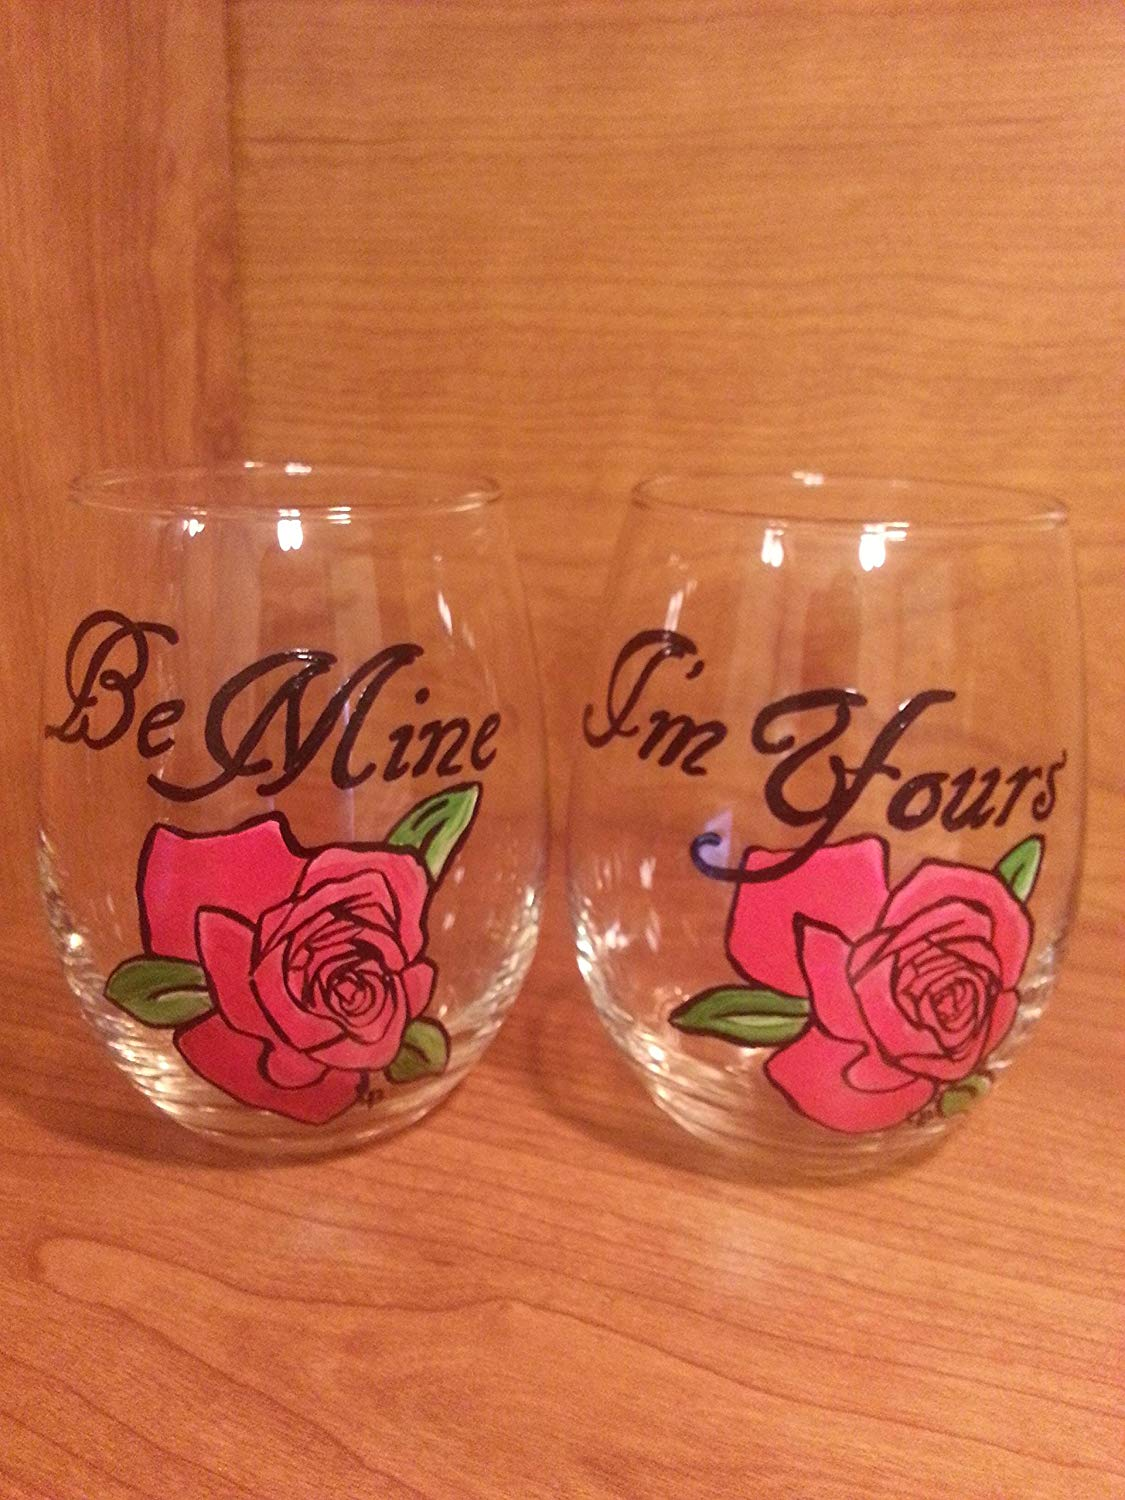 15 oz. Stemless Wine/Juice Glass - Red Rose - Set of 2 - I'm Yours/Be Mine